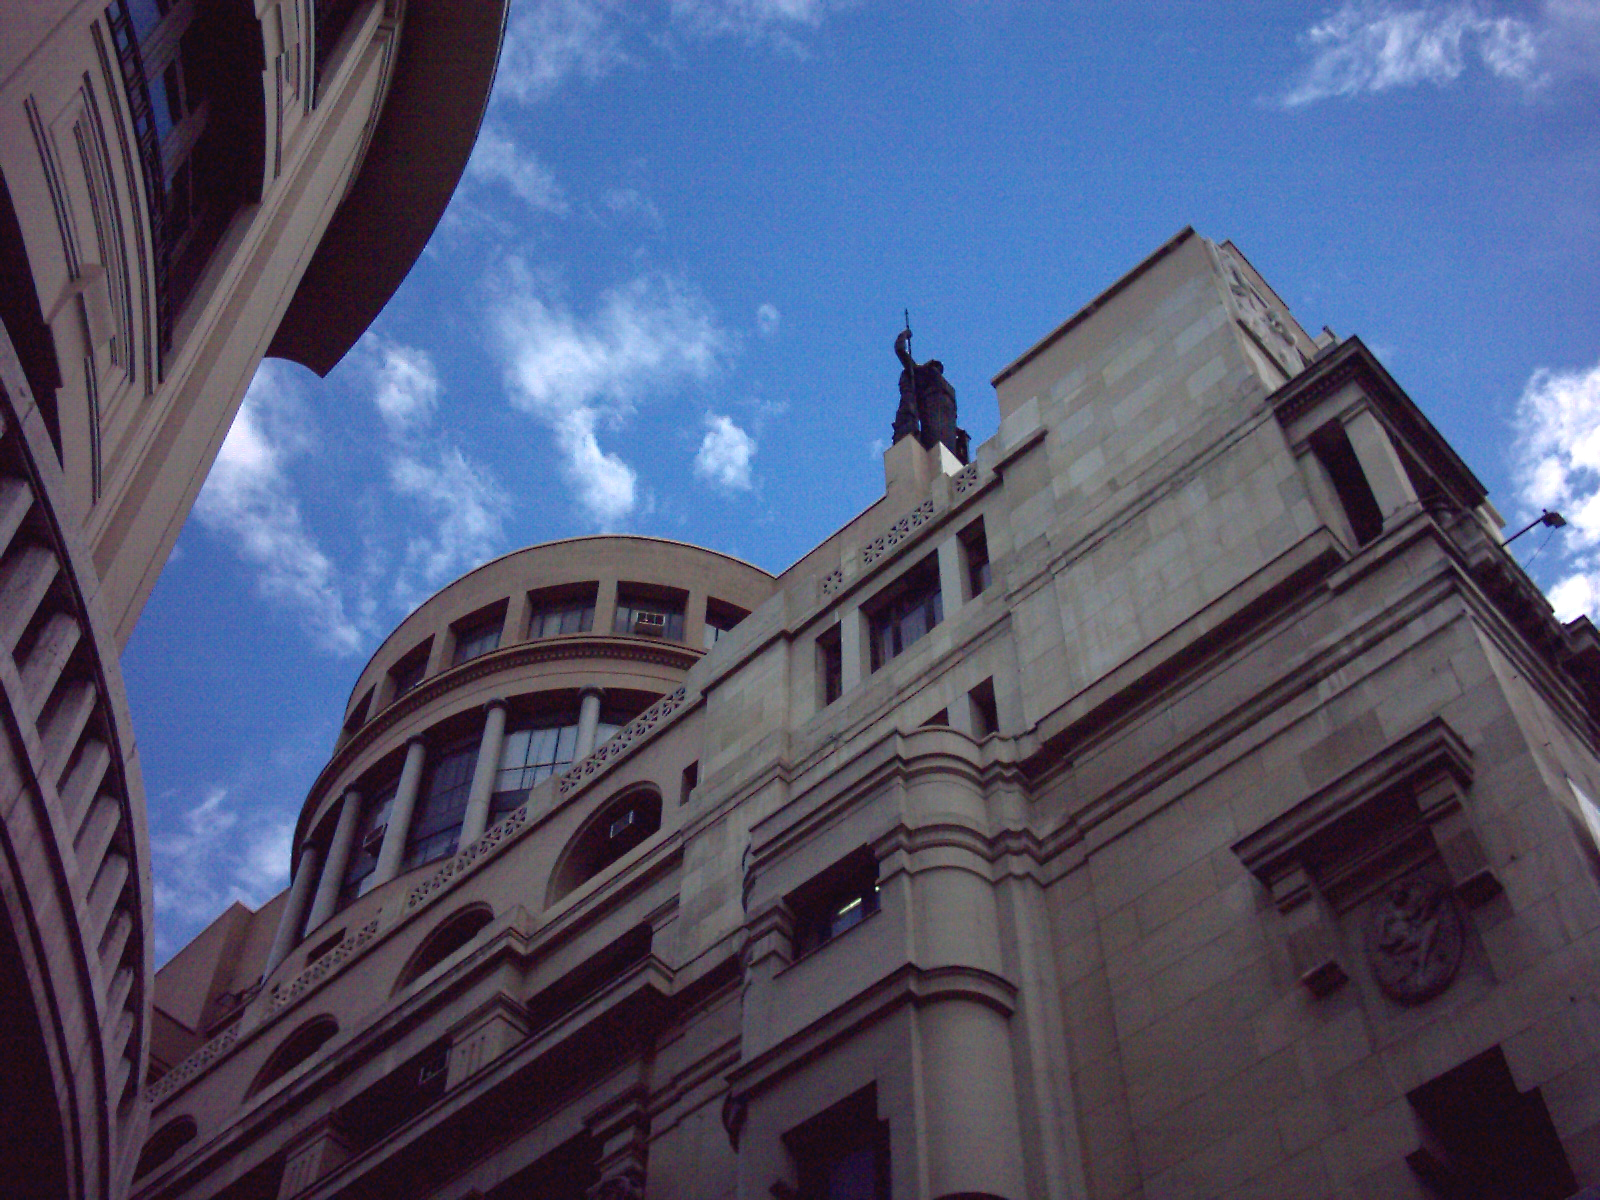 File:Madrid-Circulo de Bellas Artes.jpg